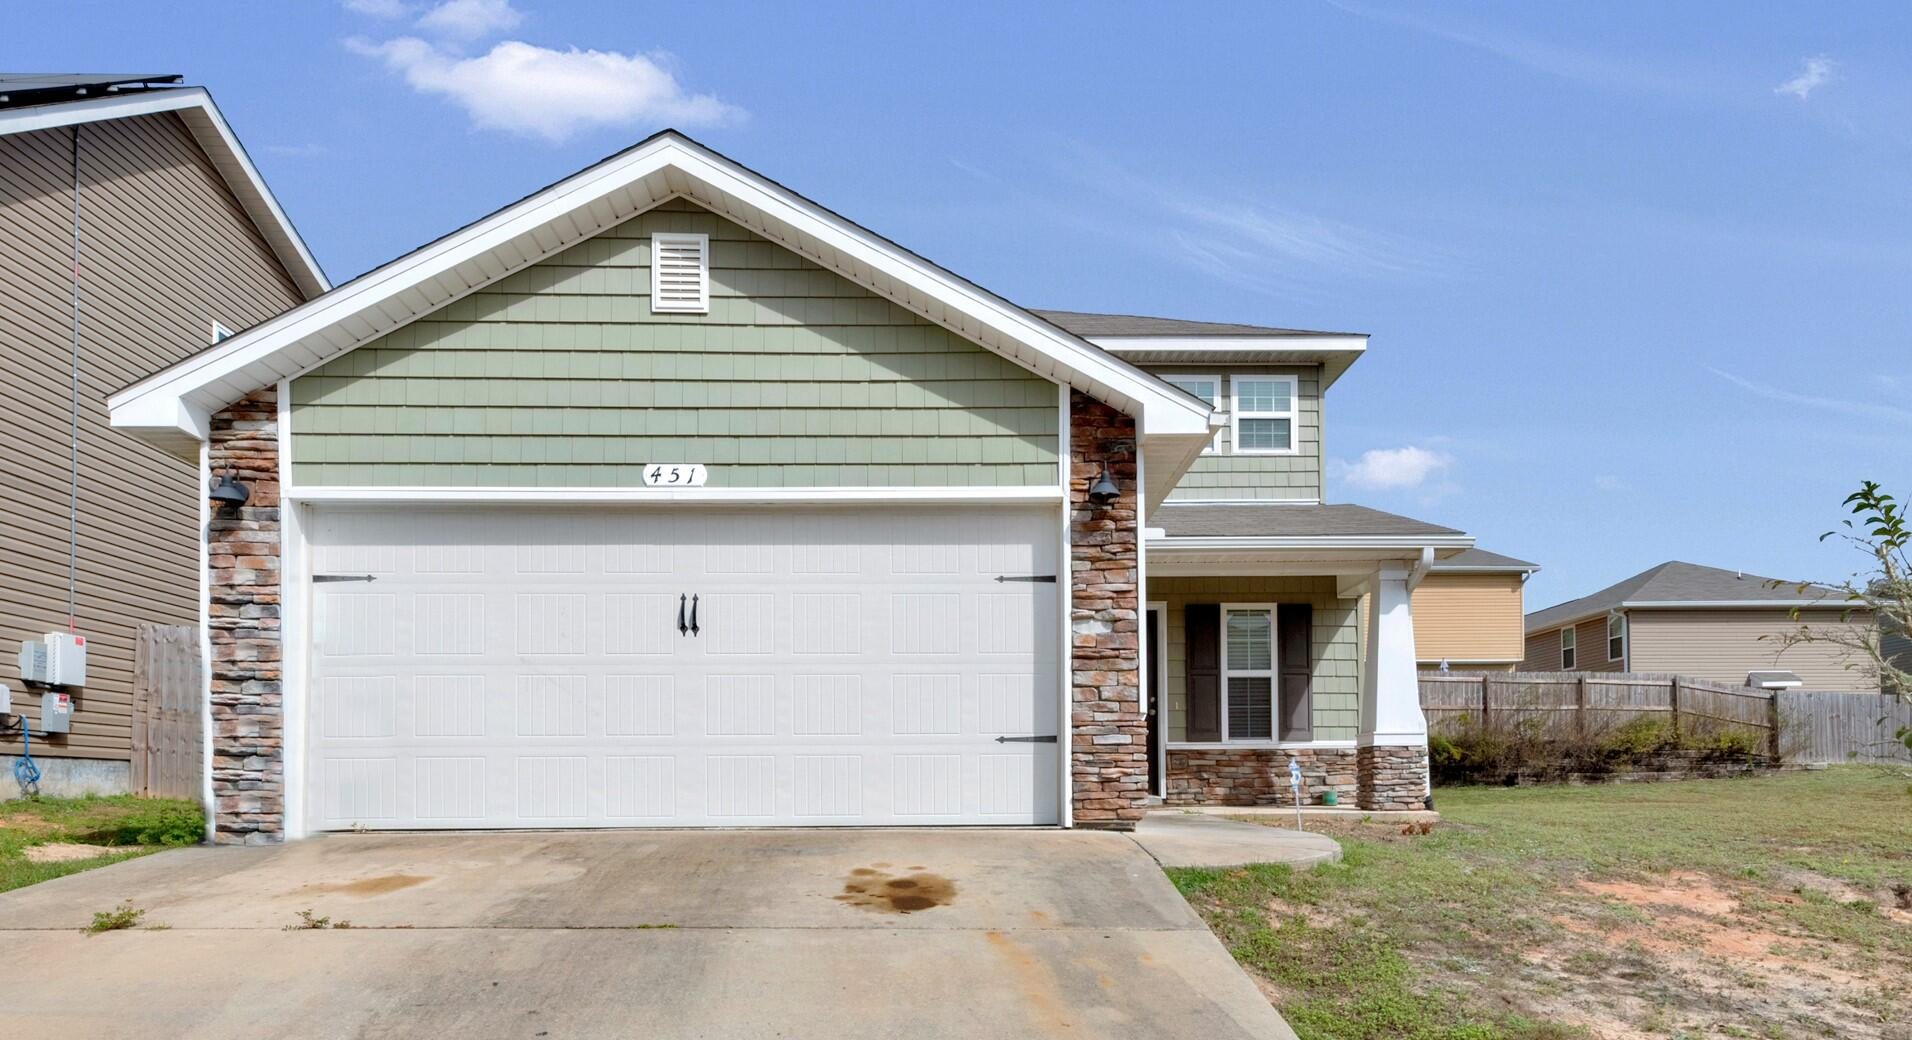 Great 2-story home and only 4 years old! This 4br/2.5ba home has the master suite on the first floor